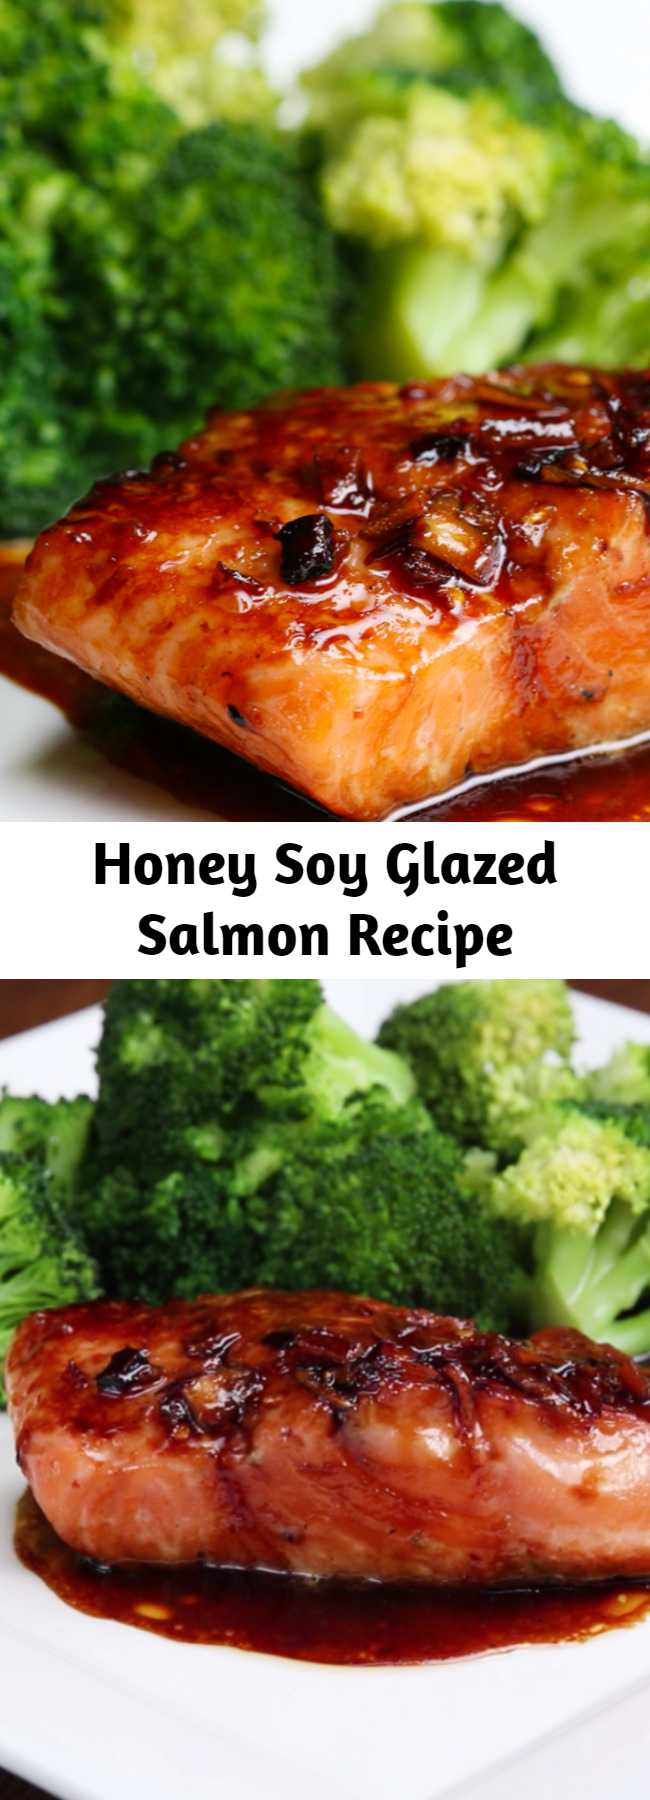 Honey Soy Glazed Salmon Recipe - Two words: honey salmon! Sure, it takes a tiny bit of prep work, but once you marinate your salmon, you won't be able to go back.